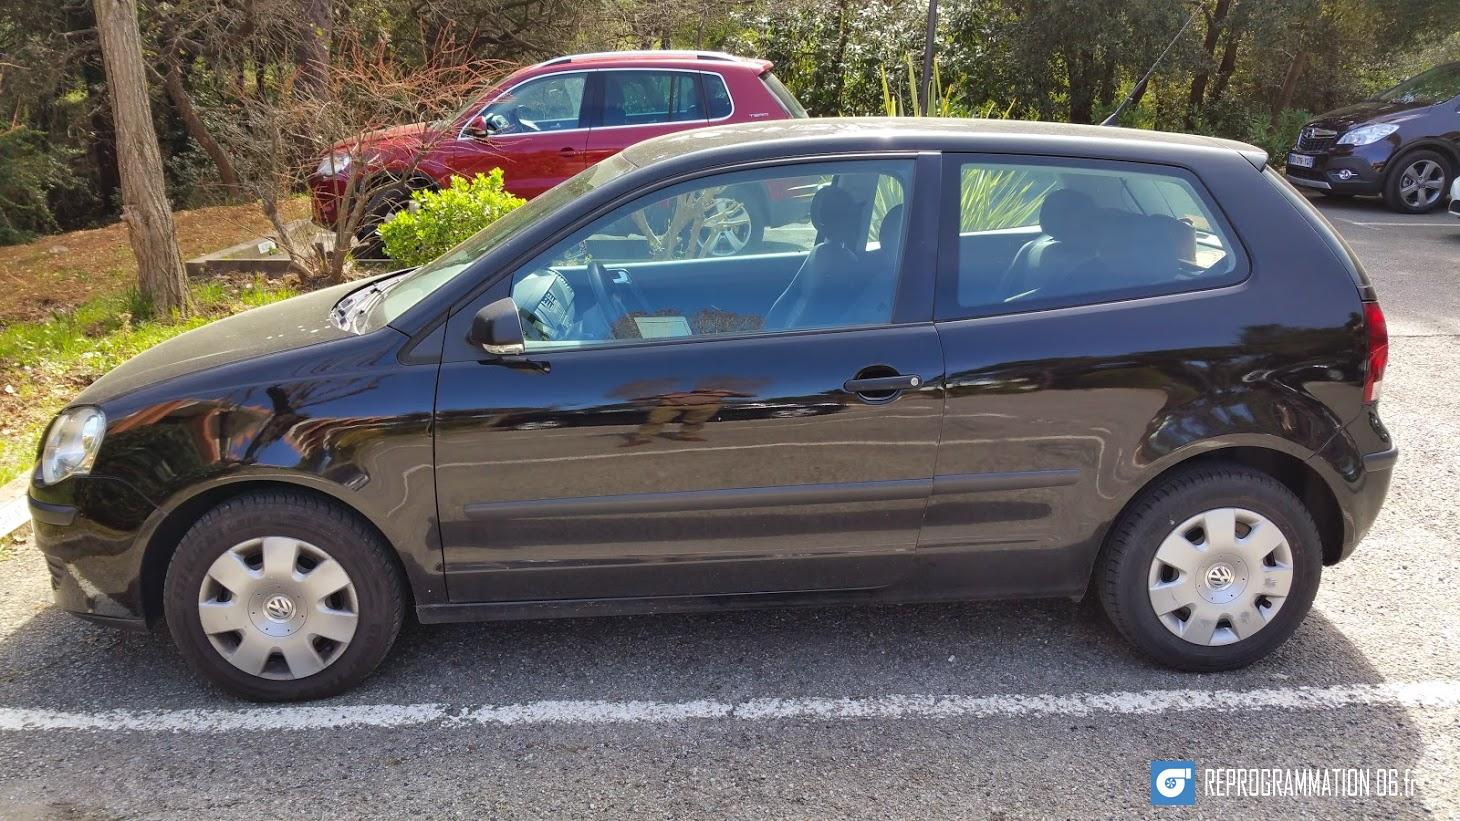 Volkswagen Polo 4 Phase2 1.4TDI - 70ch